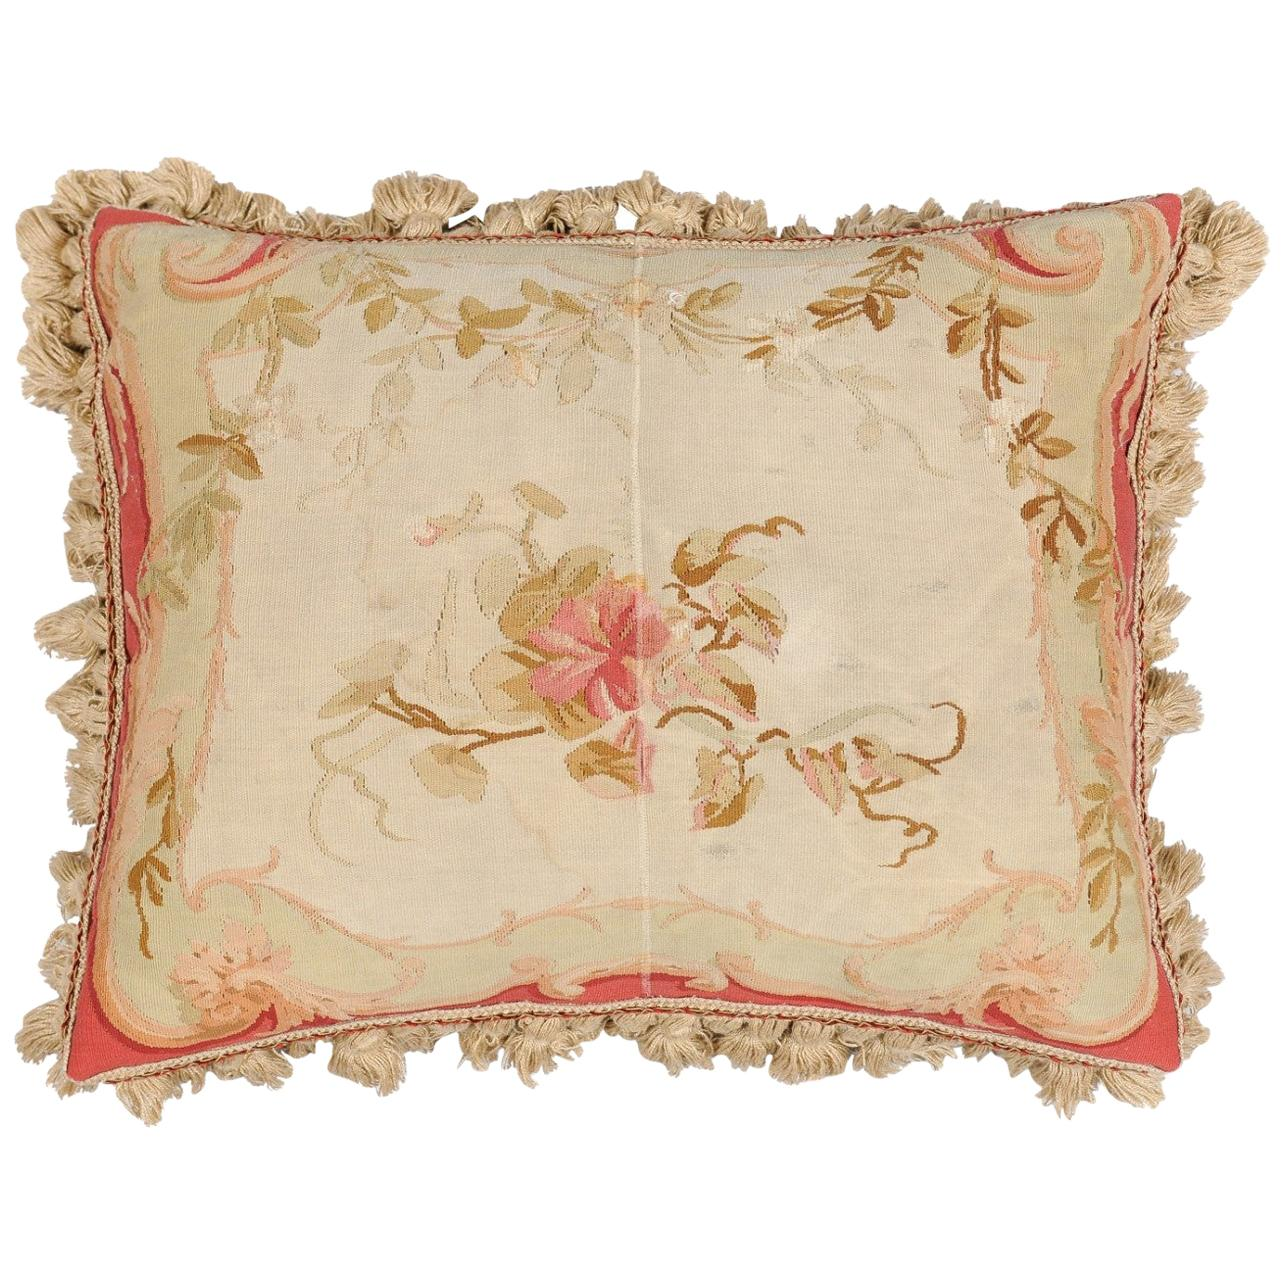 19th Century French Aubusson Tapestry Pillow with Floral Decor and Tassels